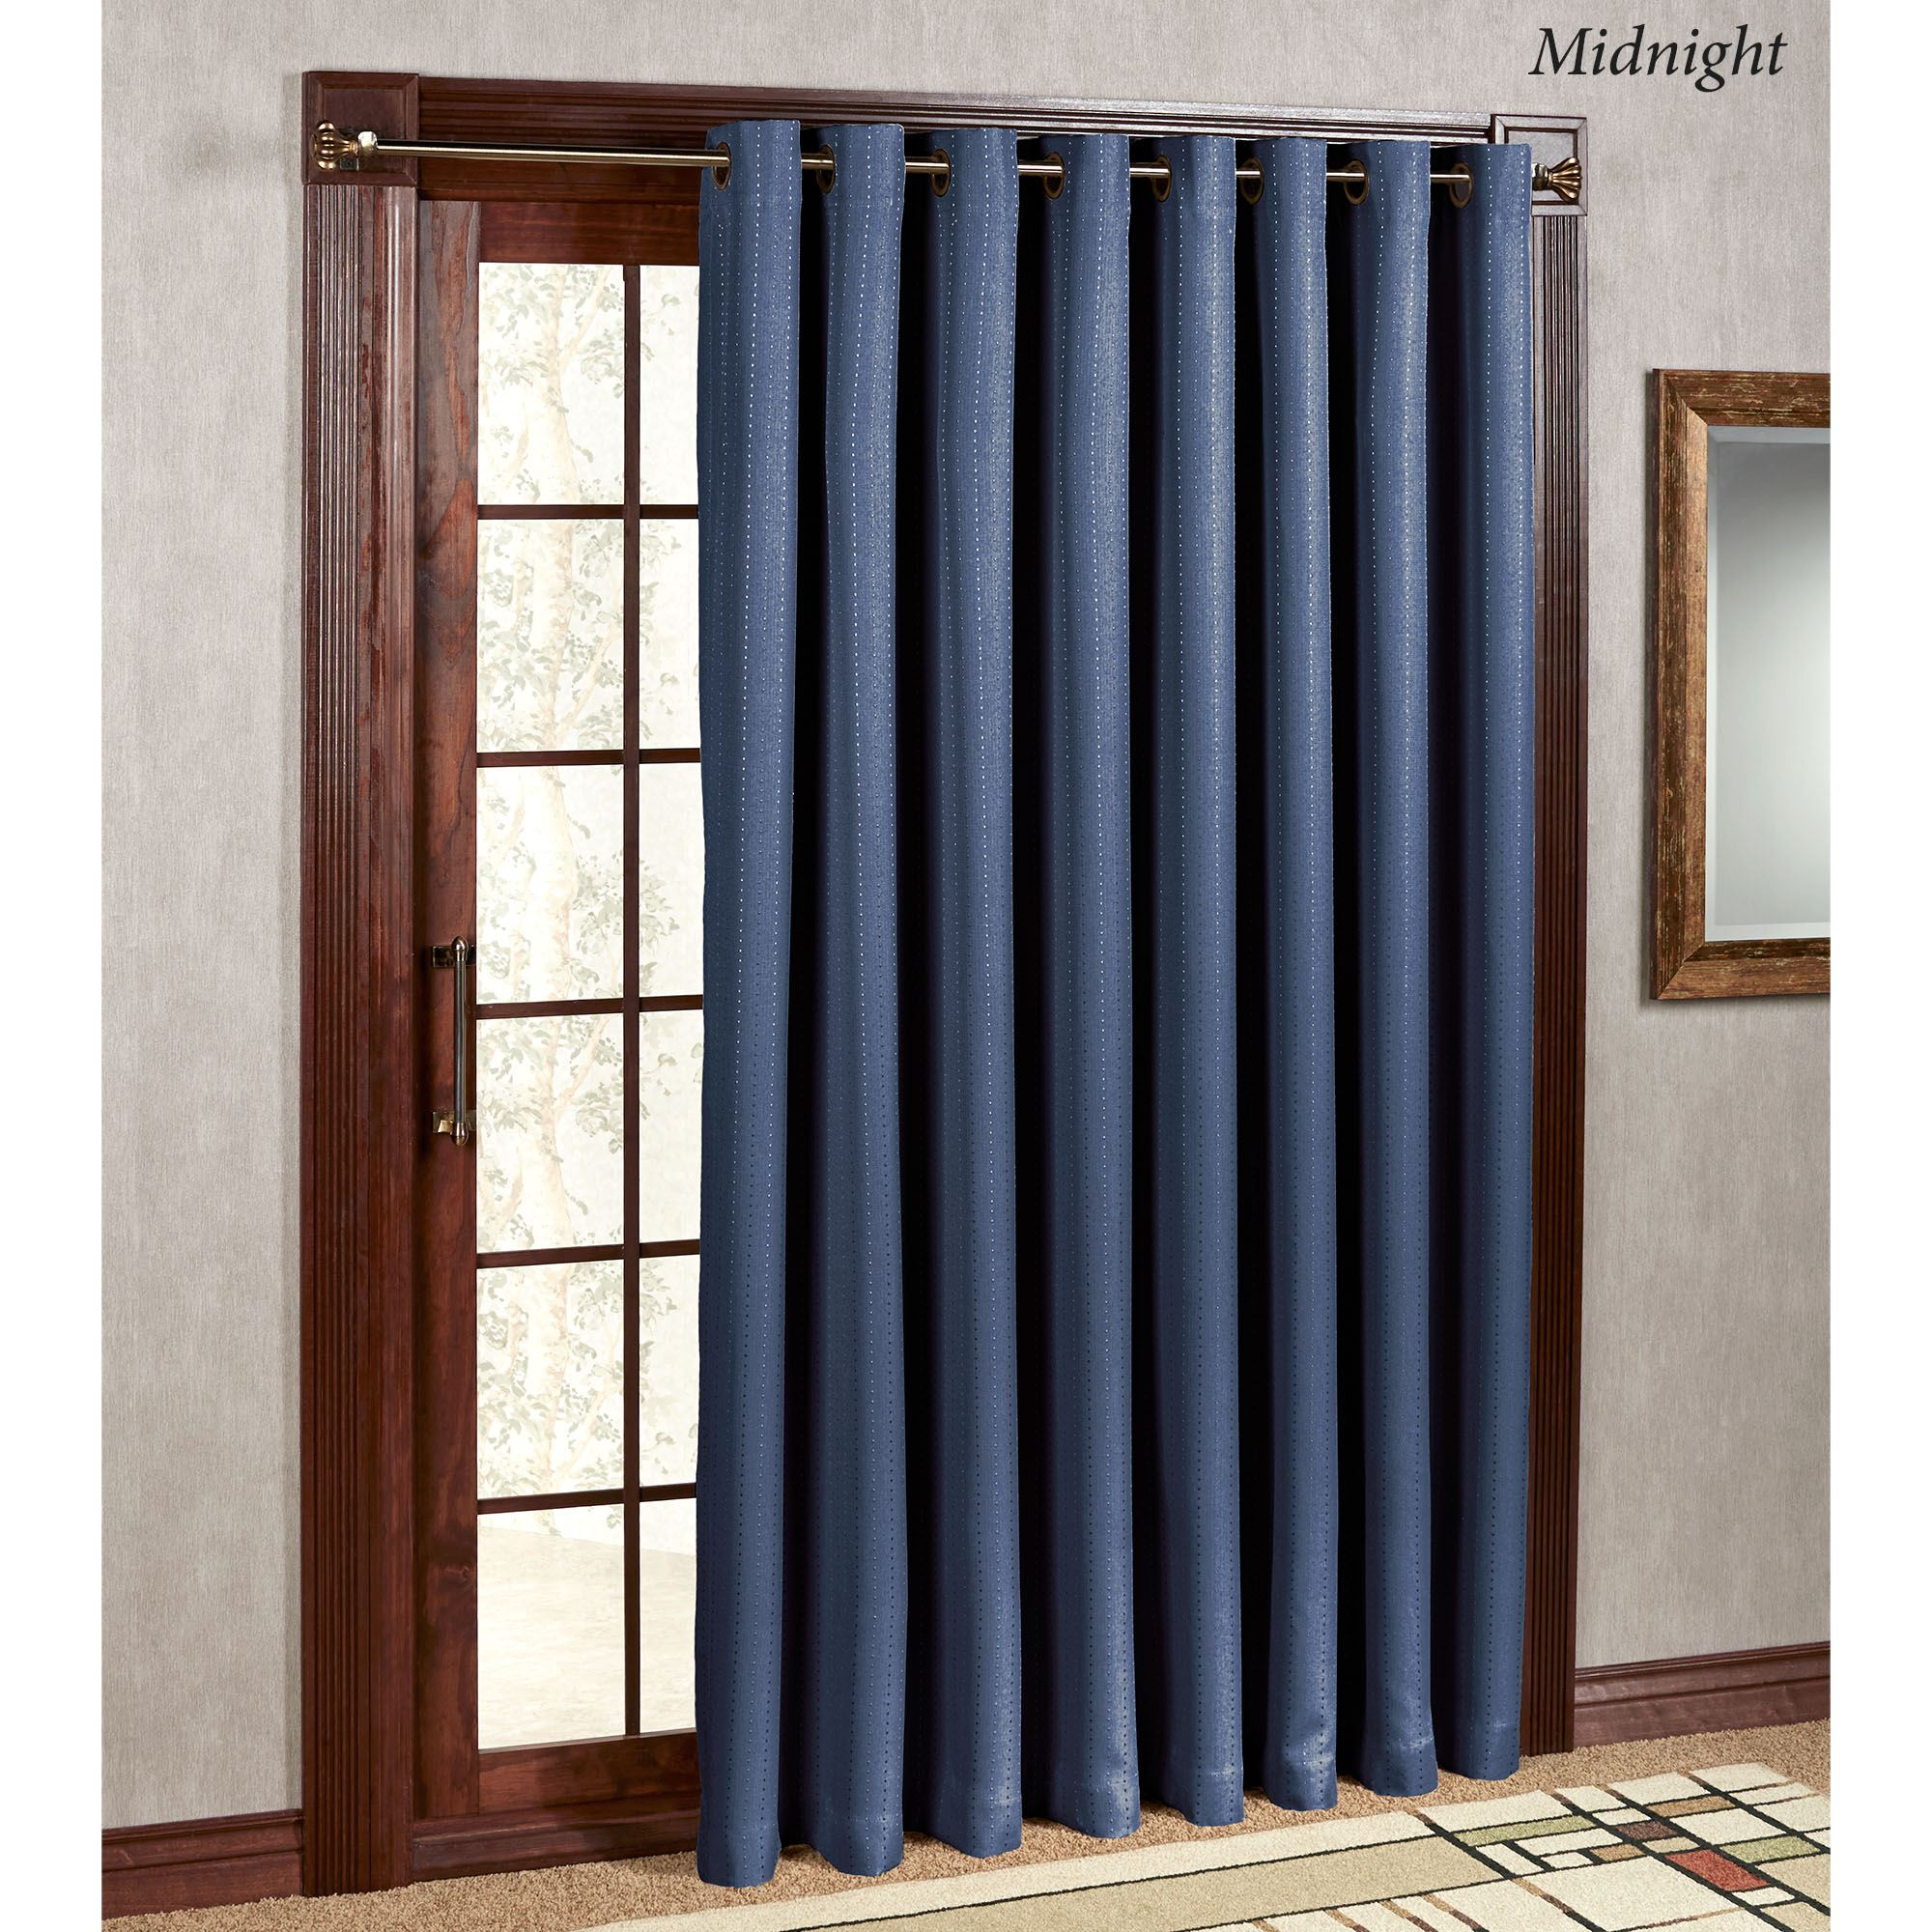 Grand pointe room darkening thermal grommet patio panel for Balcony curtains